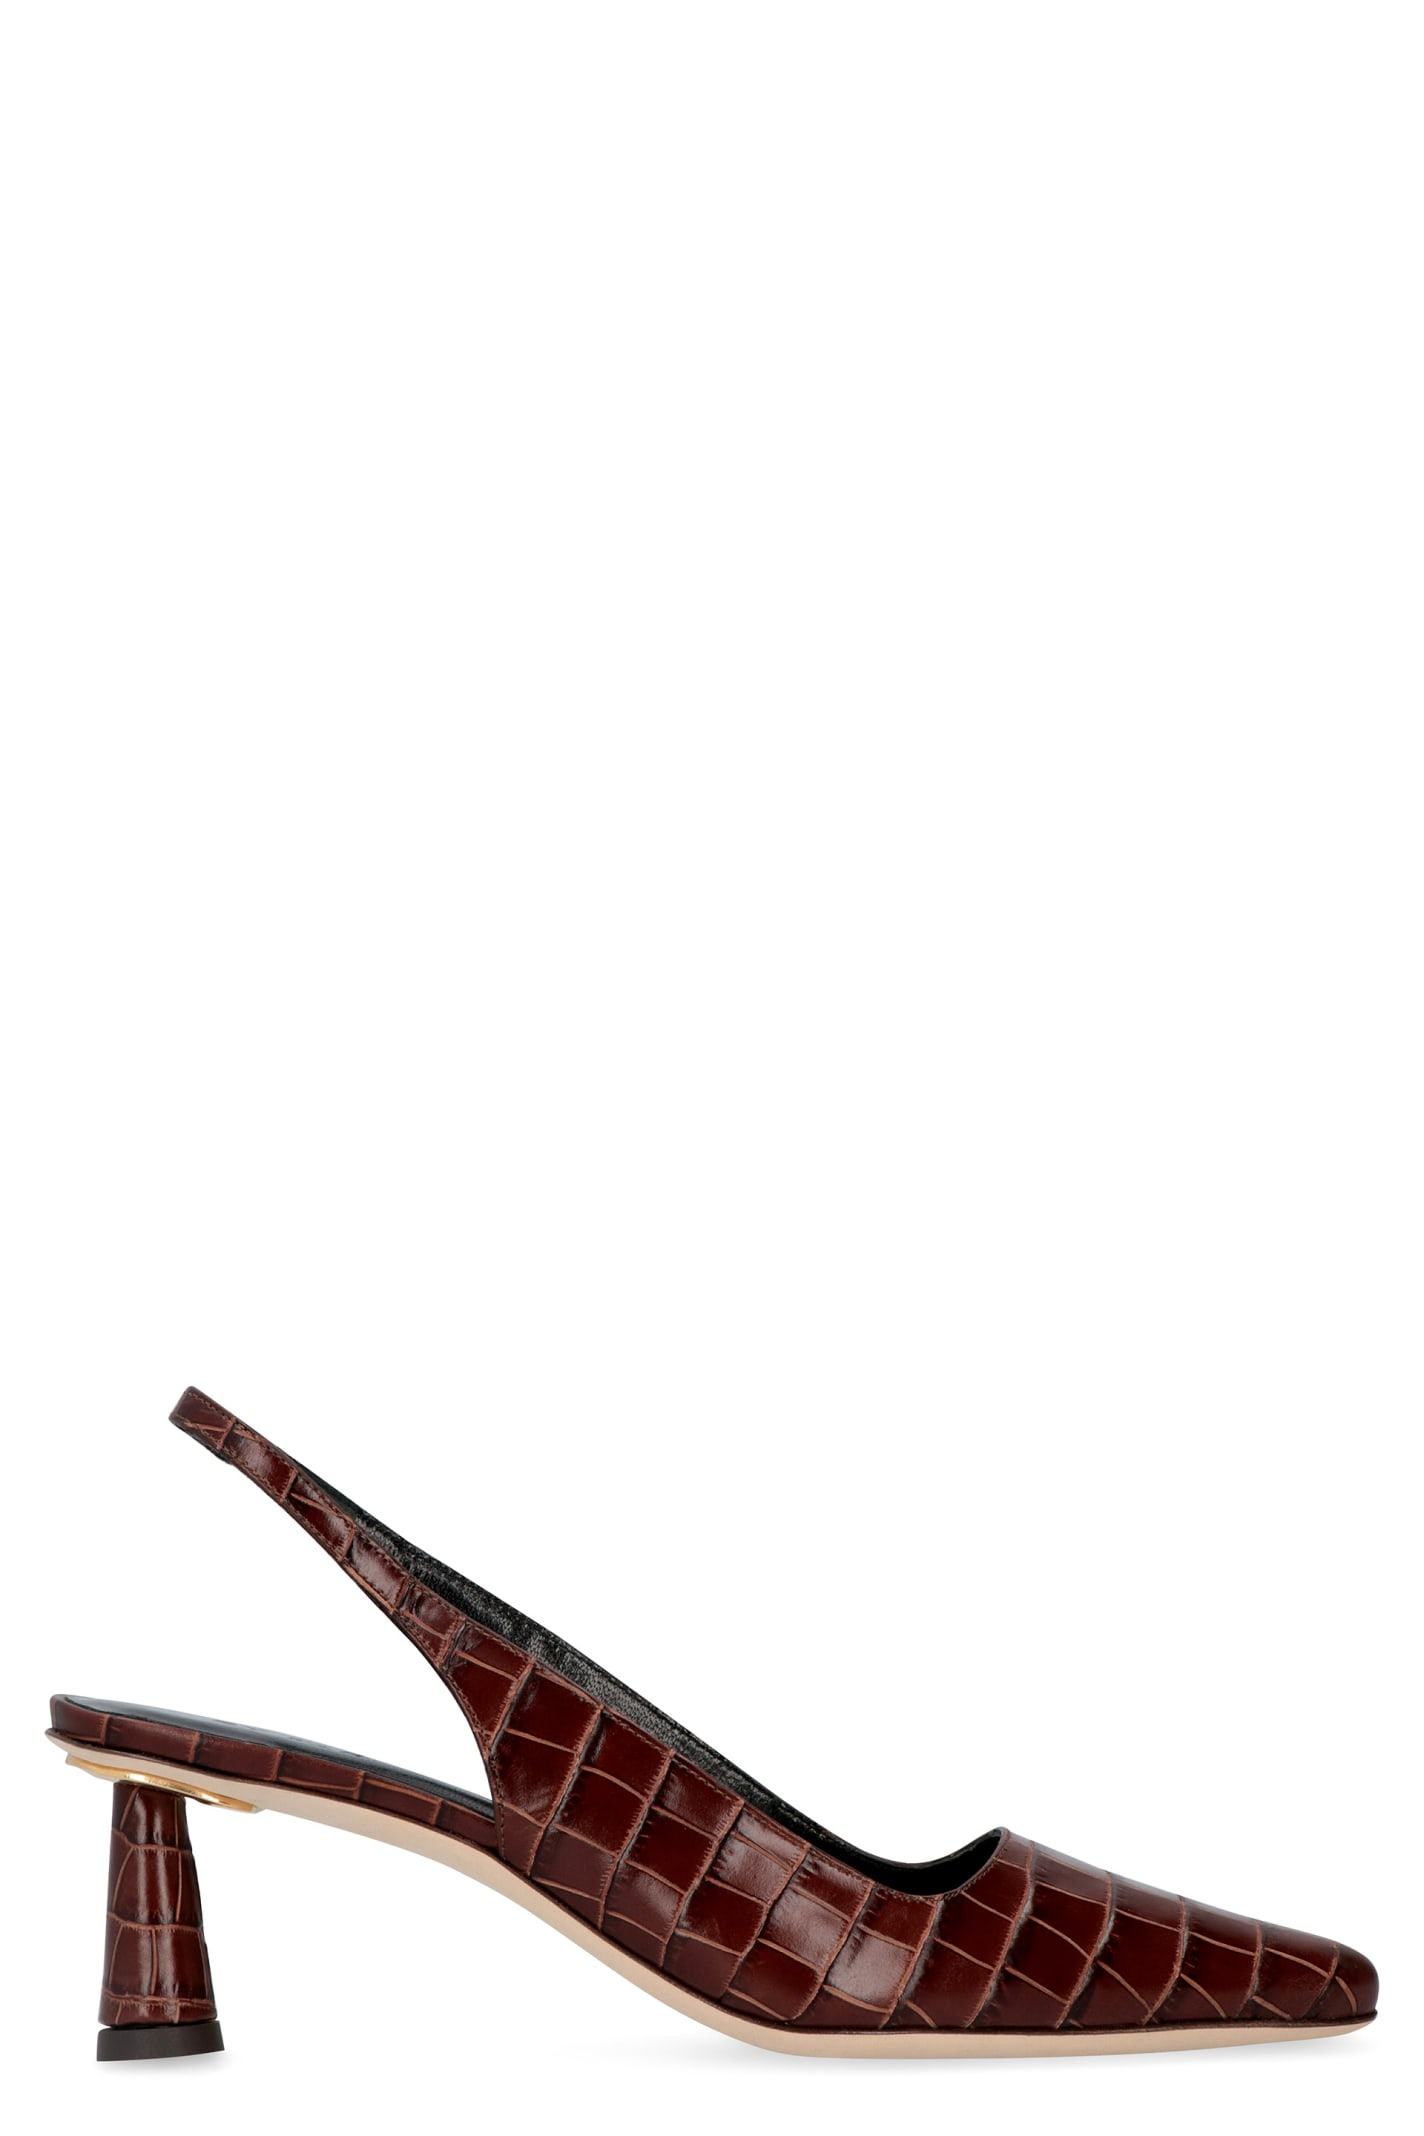 BY FAR Diana Croco Print Leather Slingback Pumps